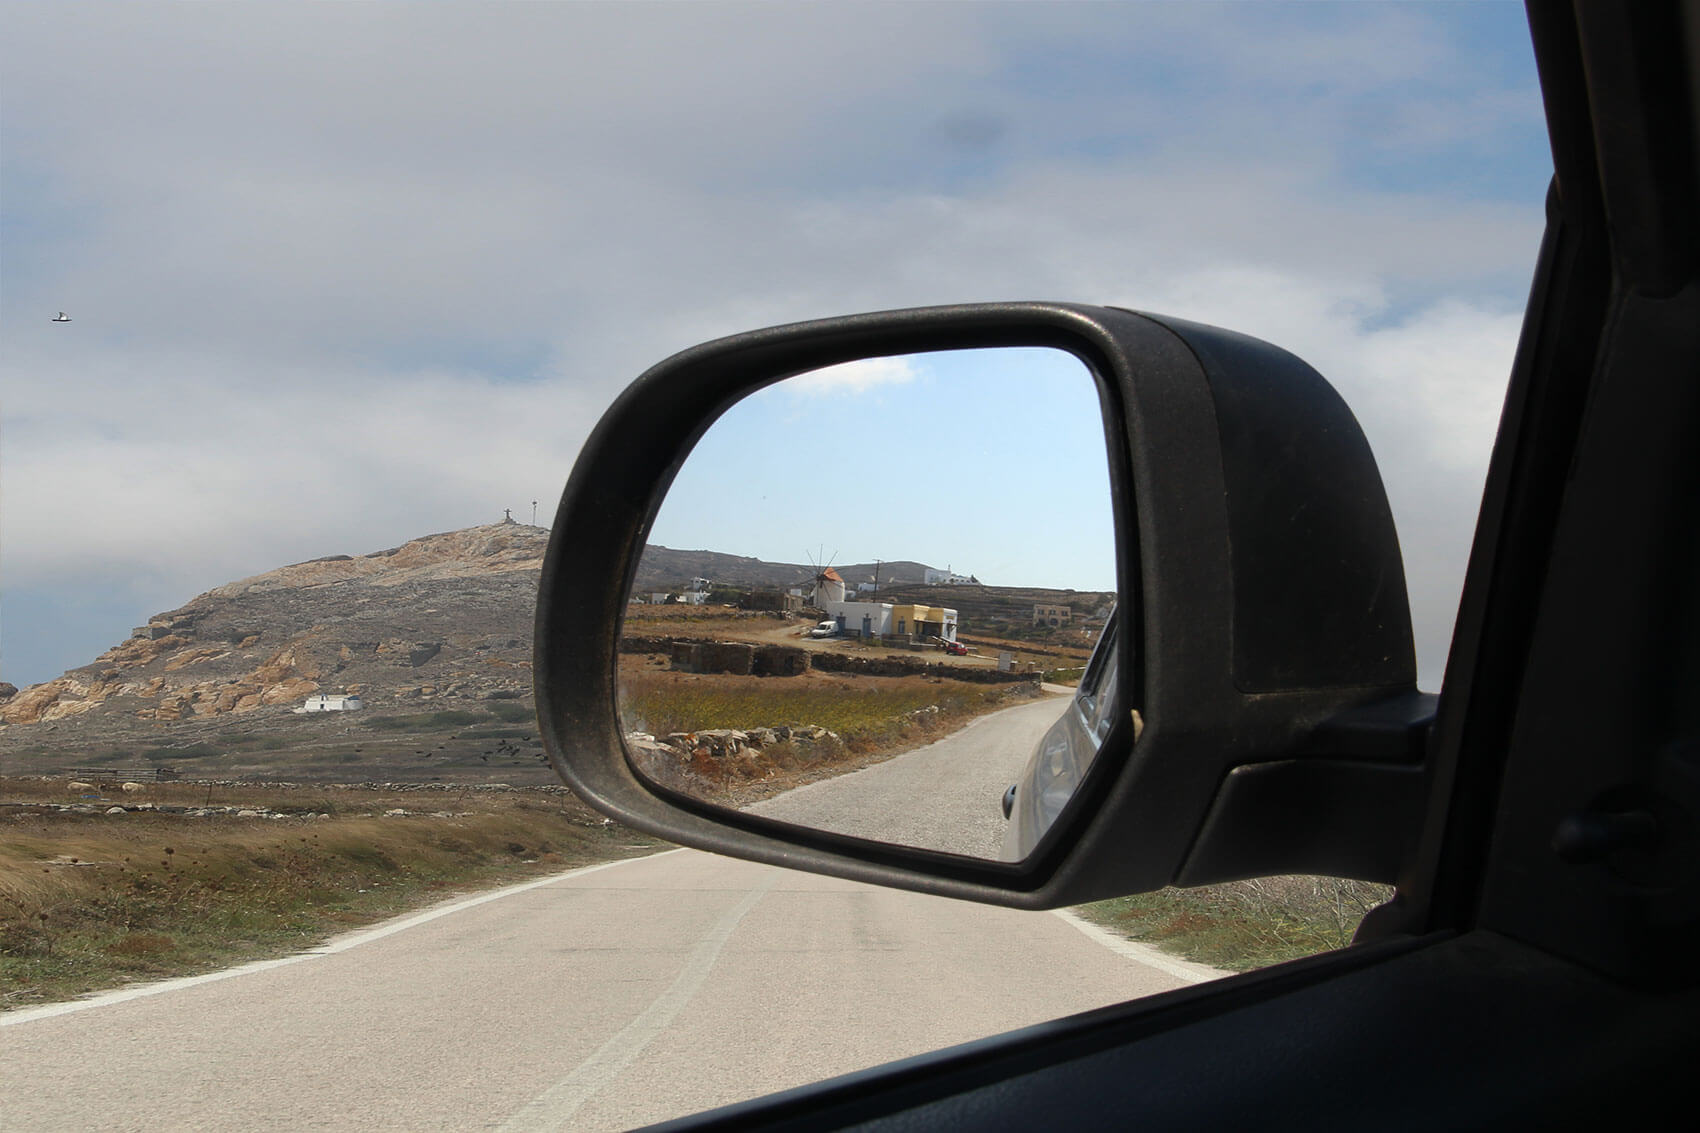 the side rear-view mirror